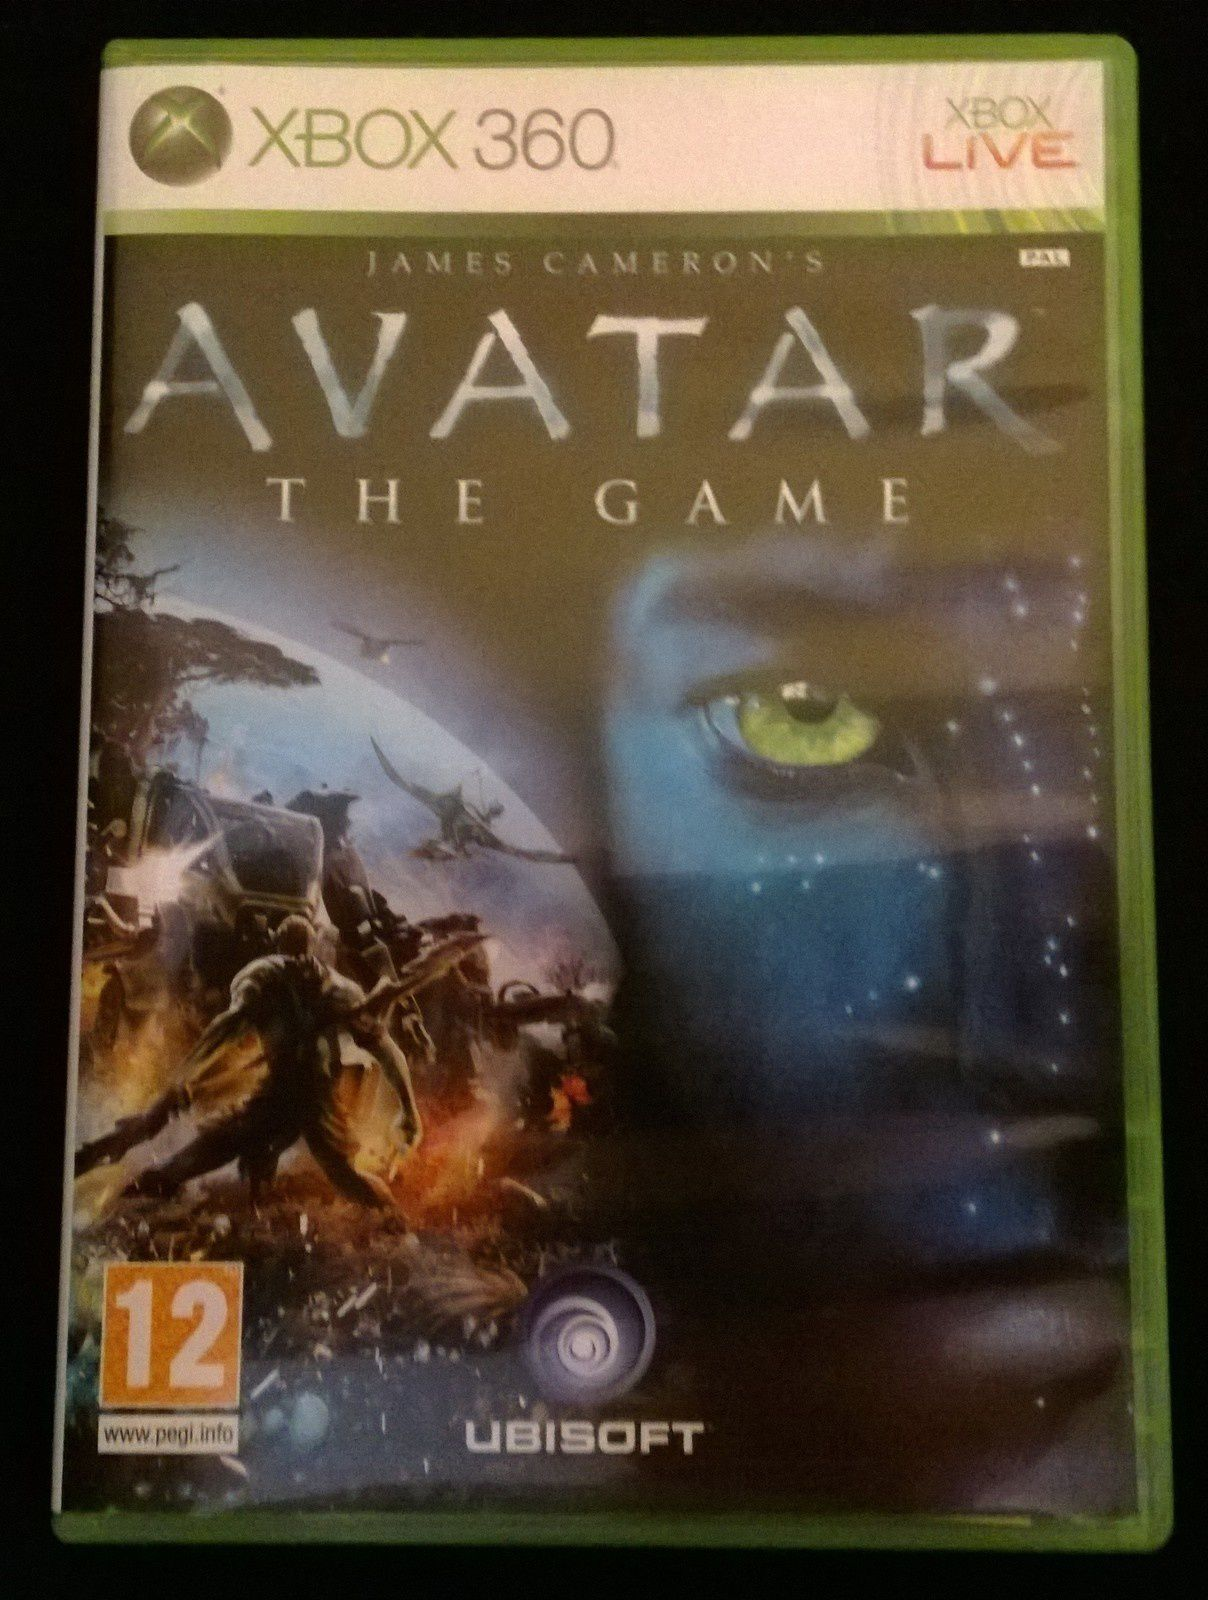 AVATAR, 'The Game'